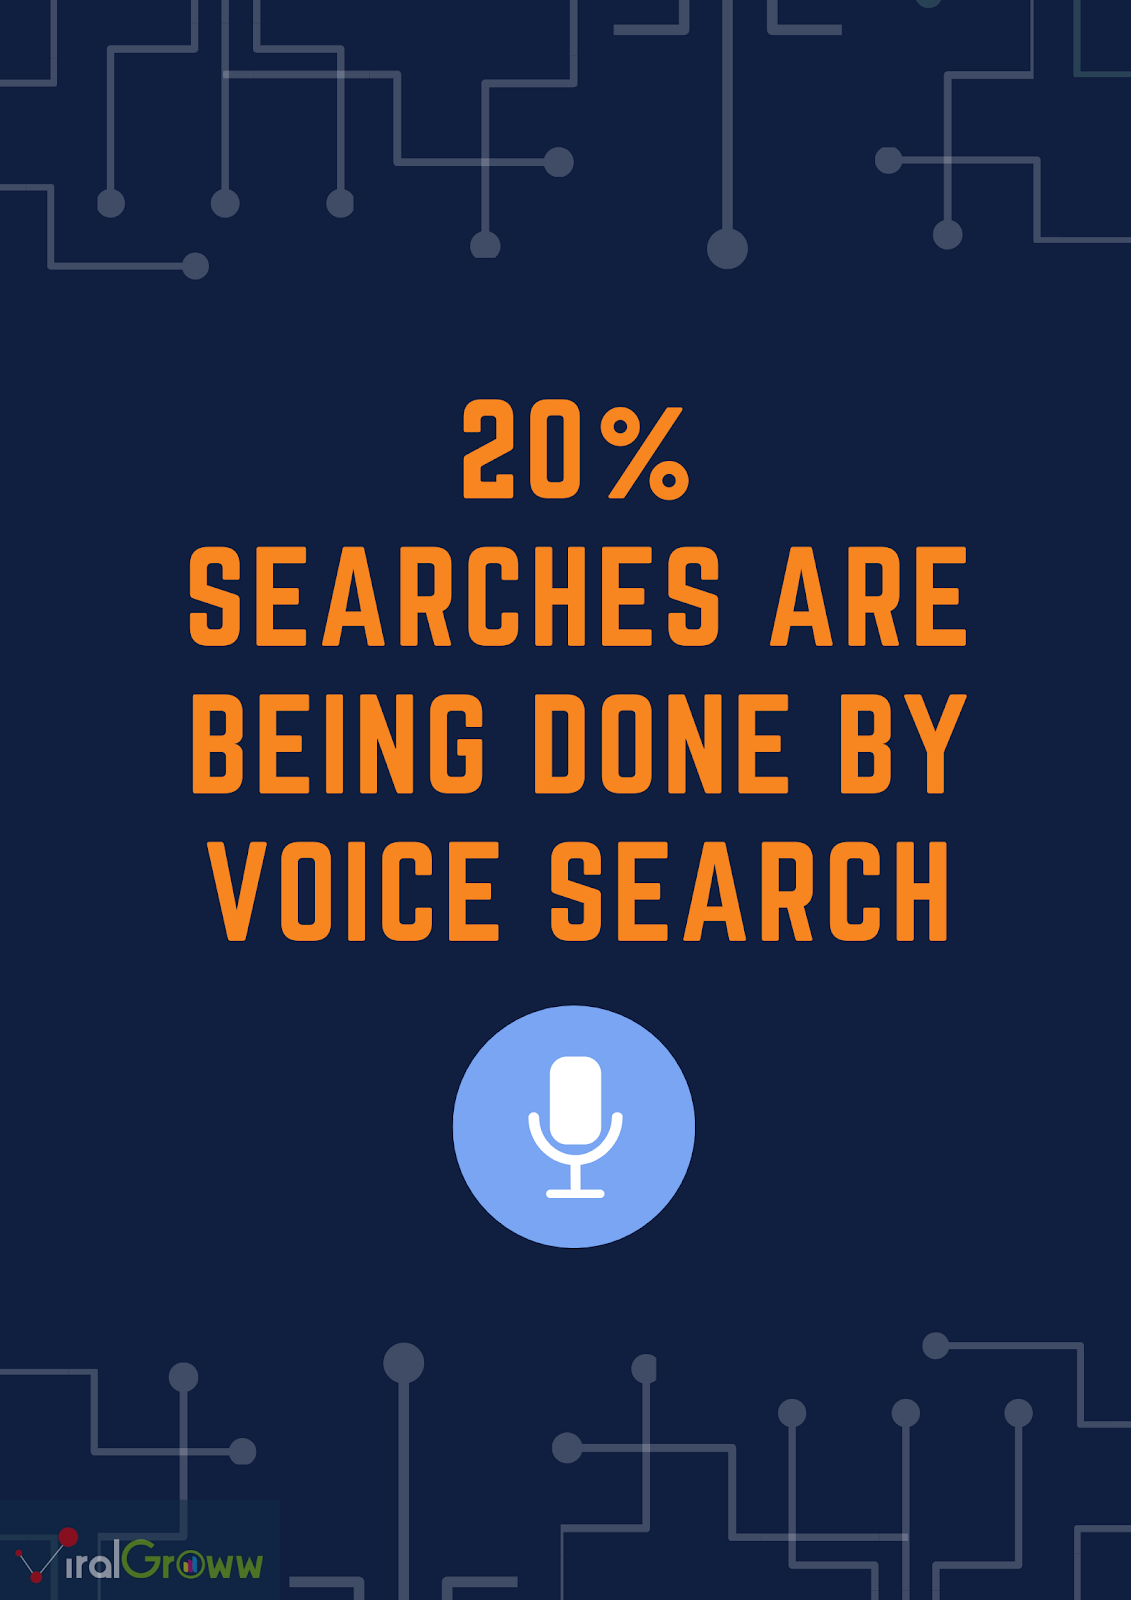 20% searches are being done by voice search